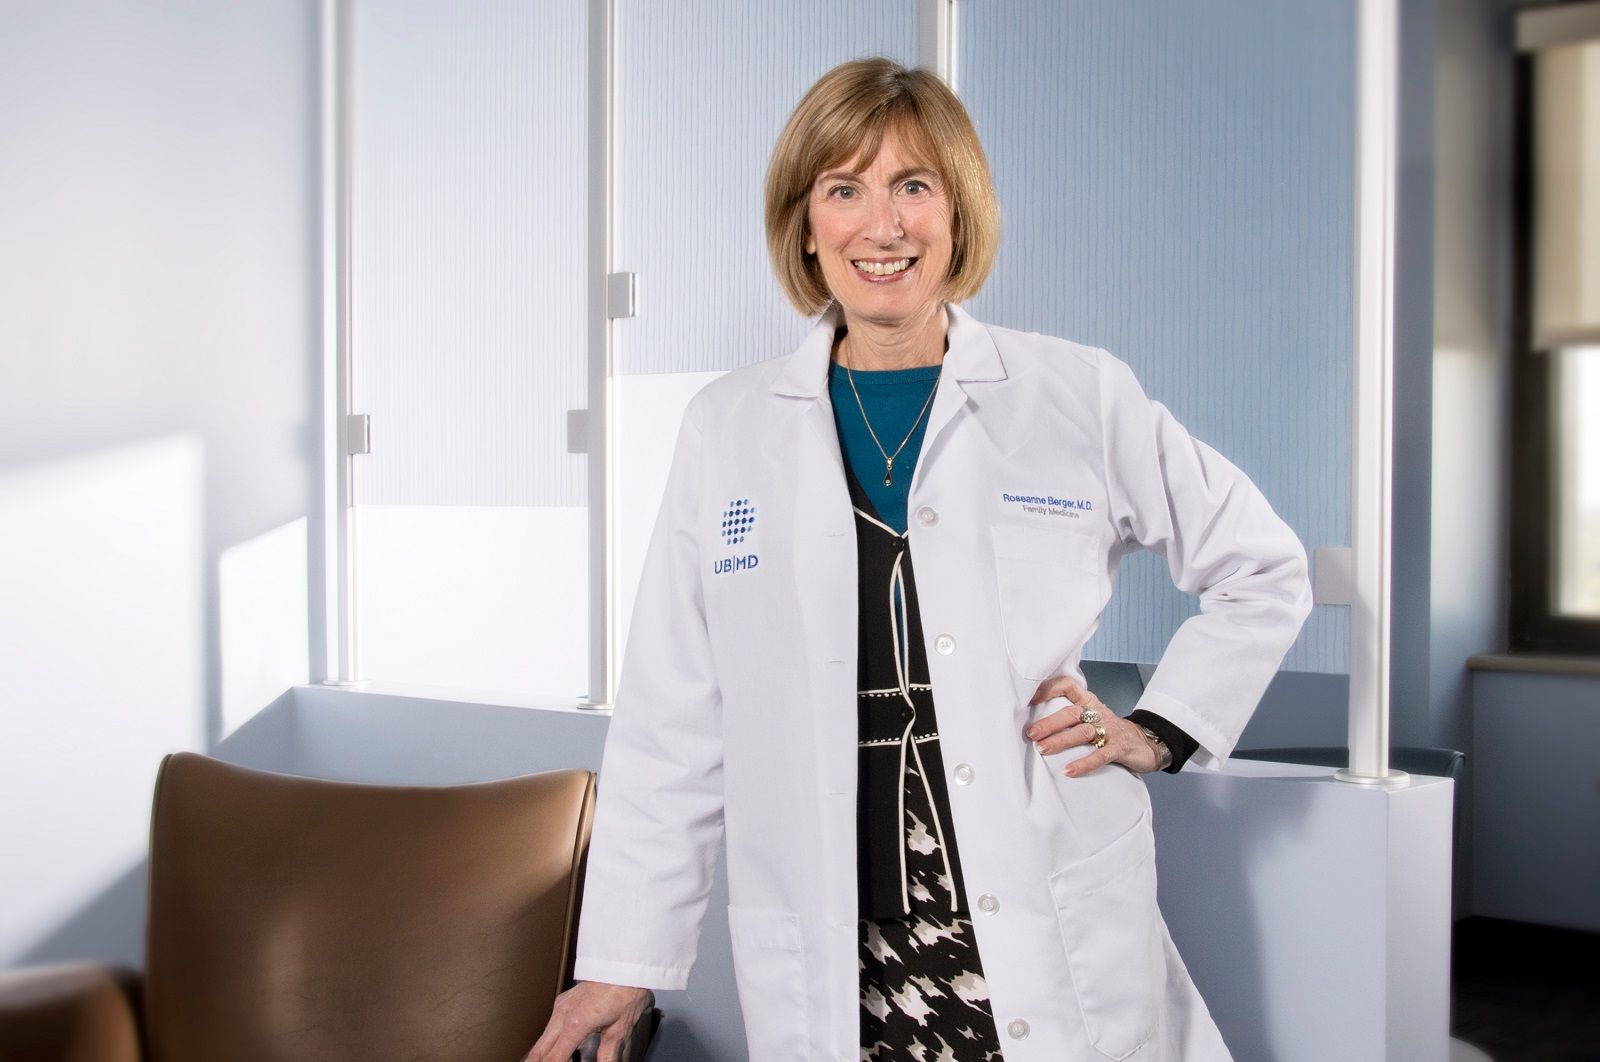 National health leader sees great promise in new UB medical